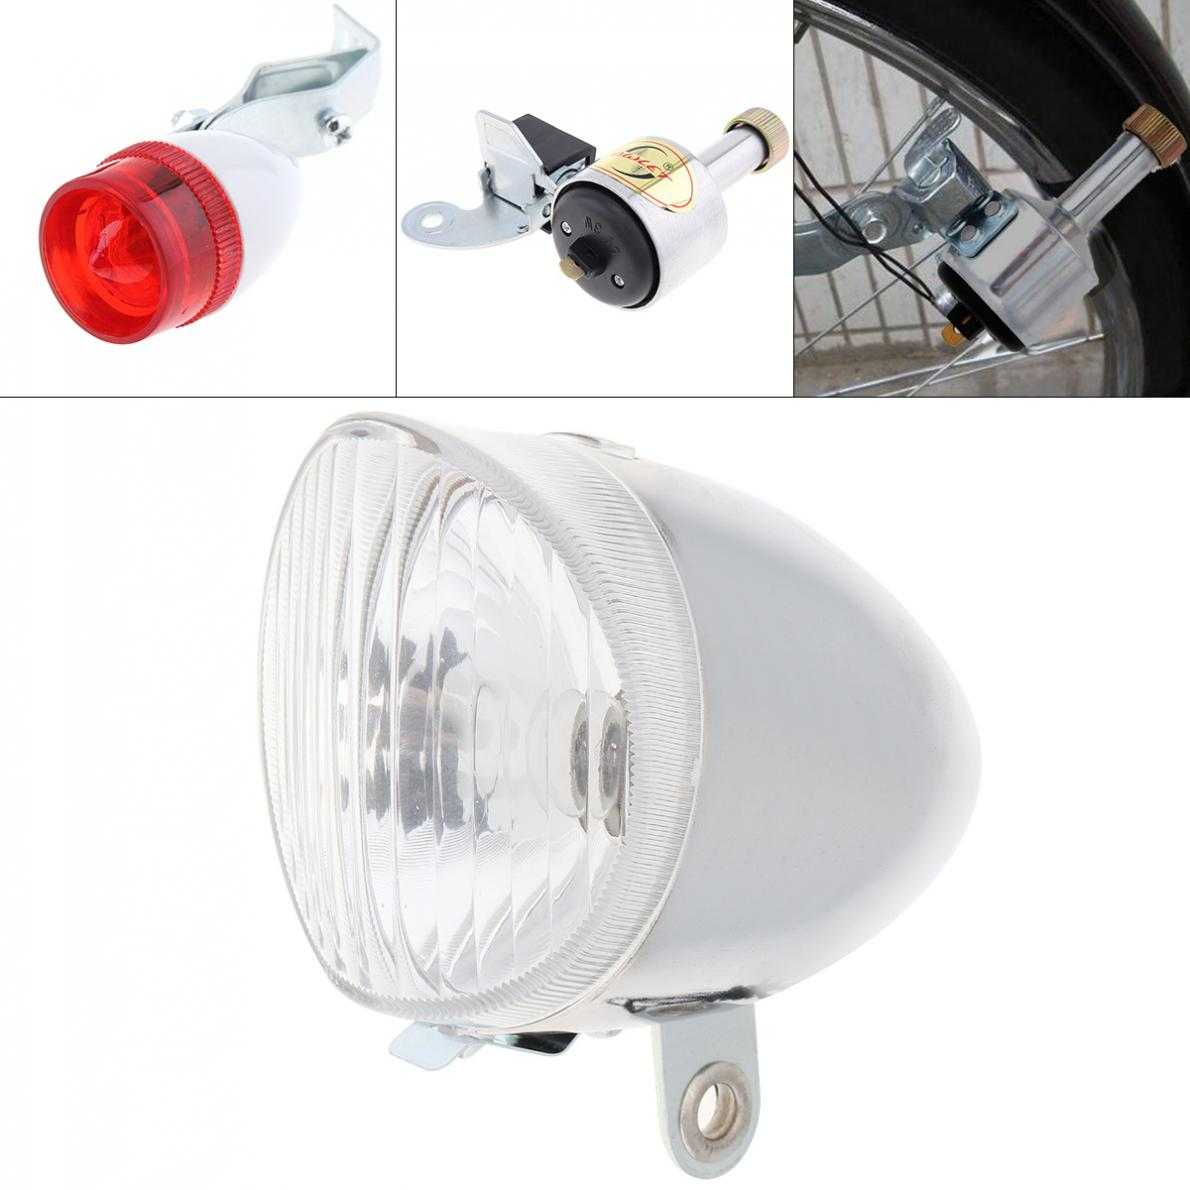 6V 3W Silver Bike Bicycle Dynamo Lights LED Self-powered Front Light Headlight And Rear Light LED Lamp Sets Safety For Bicycle